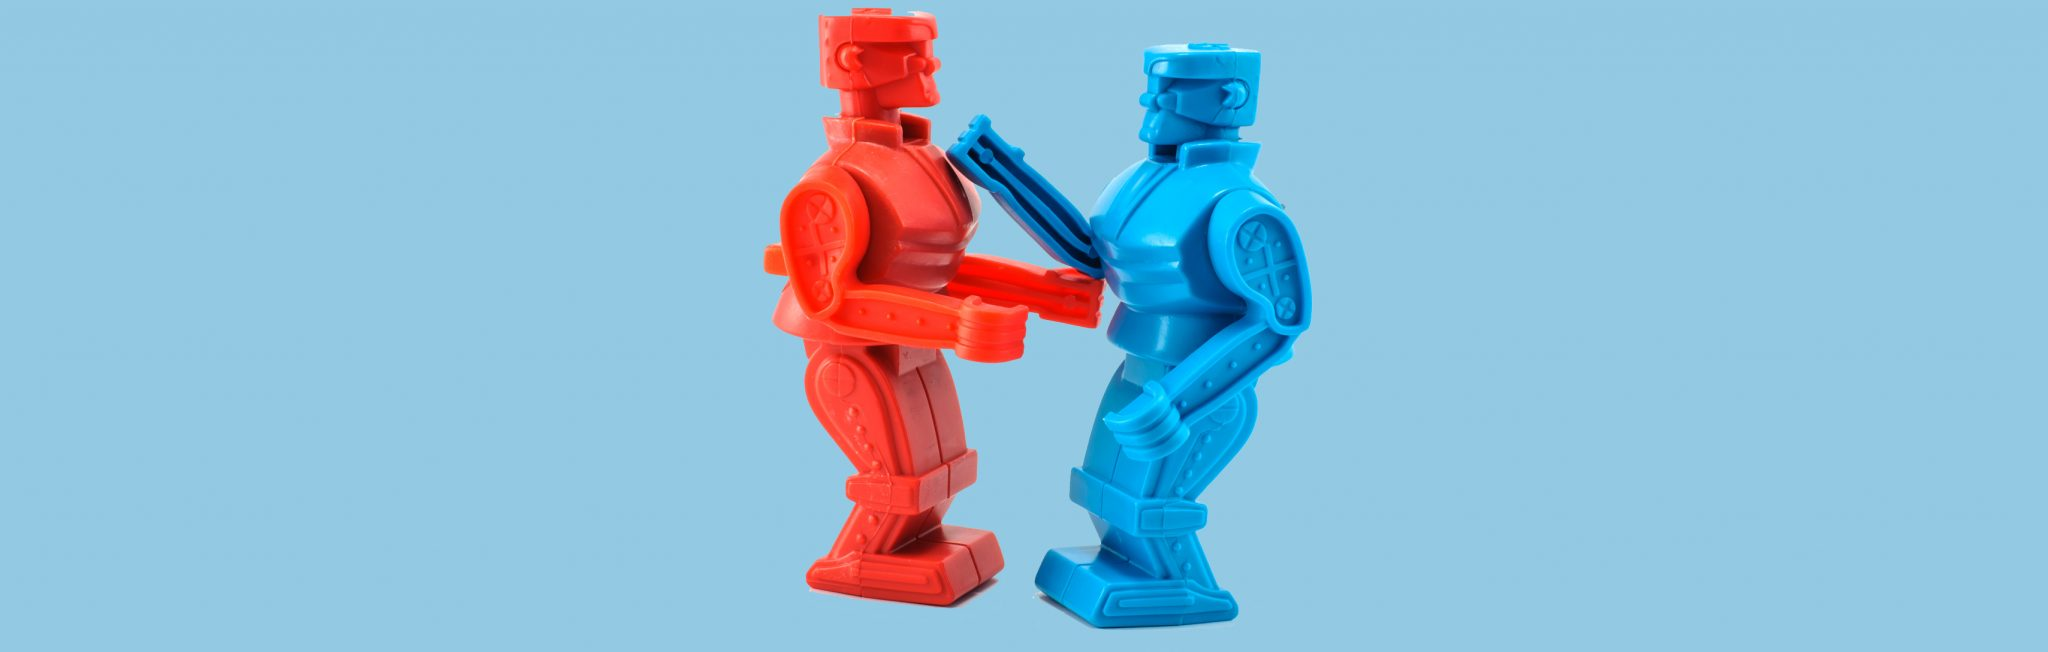 Dueling AI: Is there any benefit when robots train each other?